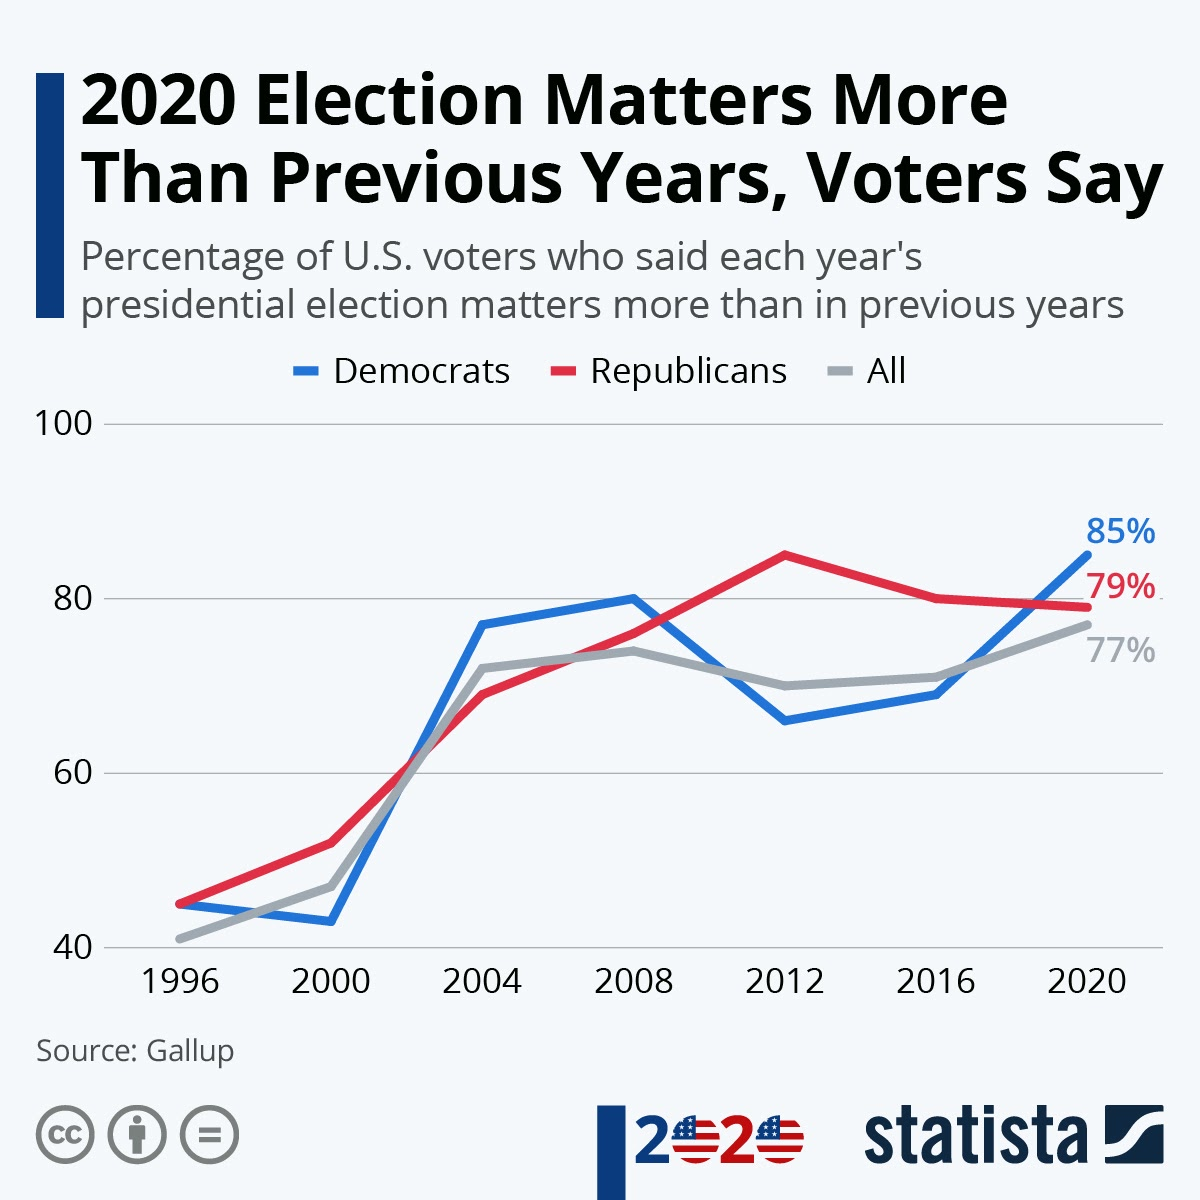 2020 Election Matters More Than Previous Years, Voters Say #infographic